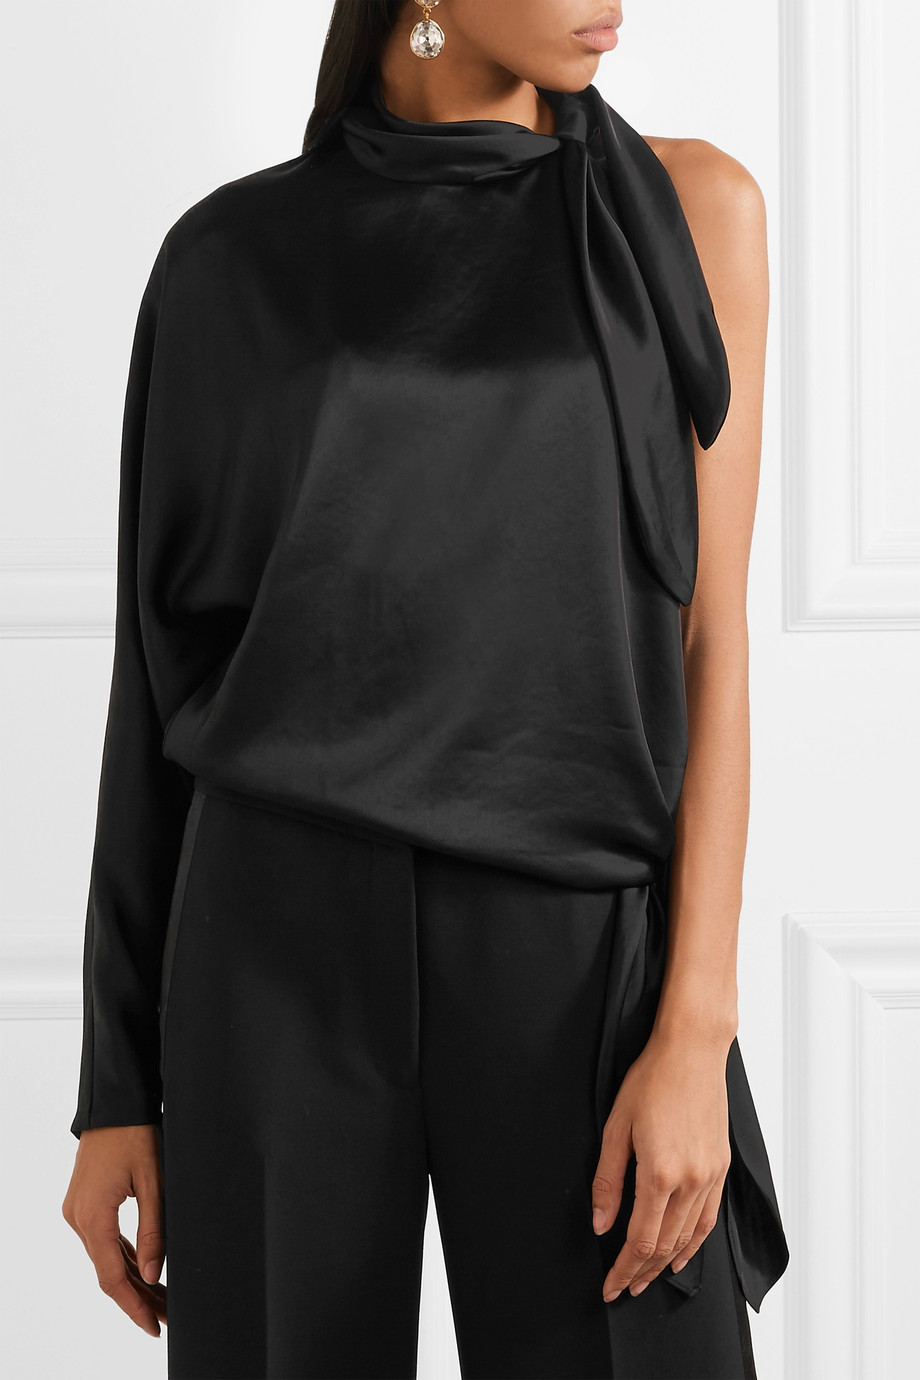 Satin blouse Diane Von Furstenberg buy Satin blouse Diane Von Furstenberg internet shop